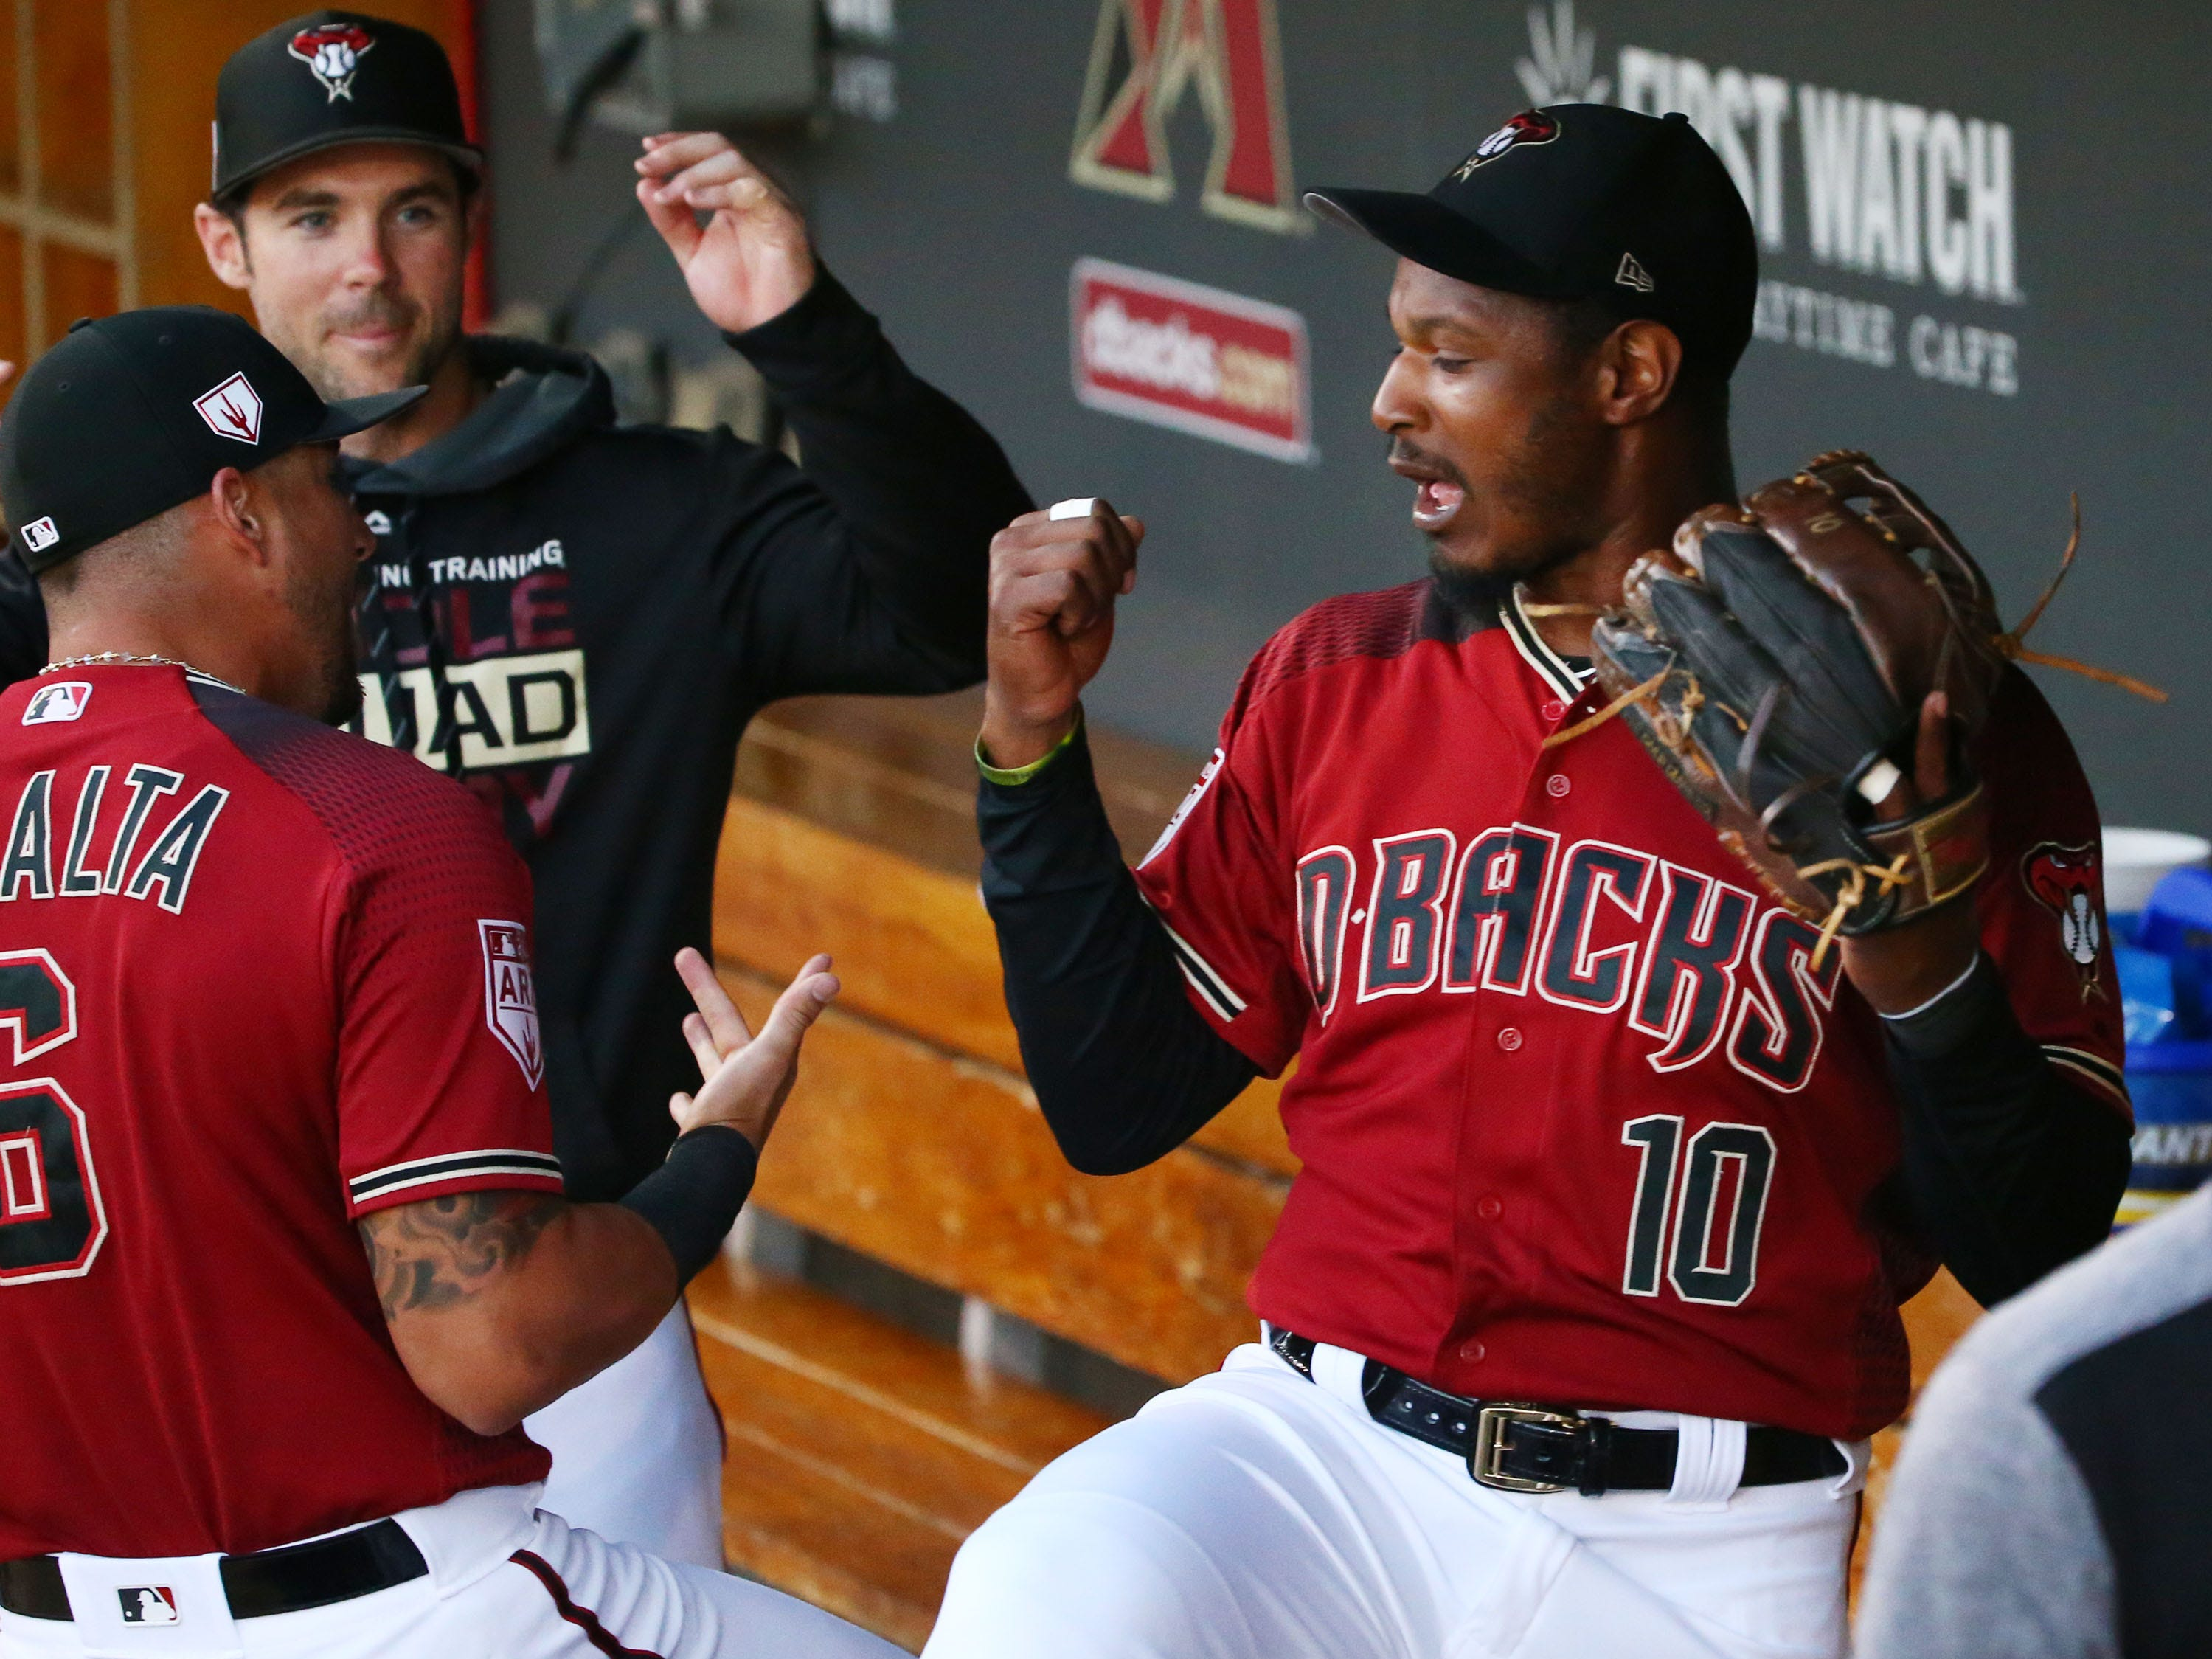 Arizona Diamondbacks center fielder Adam Jones (10) makes his debut against the San Diego Padres during a spring training game on Mar. 19, 2019 at Salt River Fields in Scottsdale, Ariz.